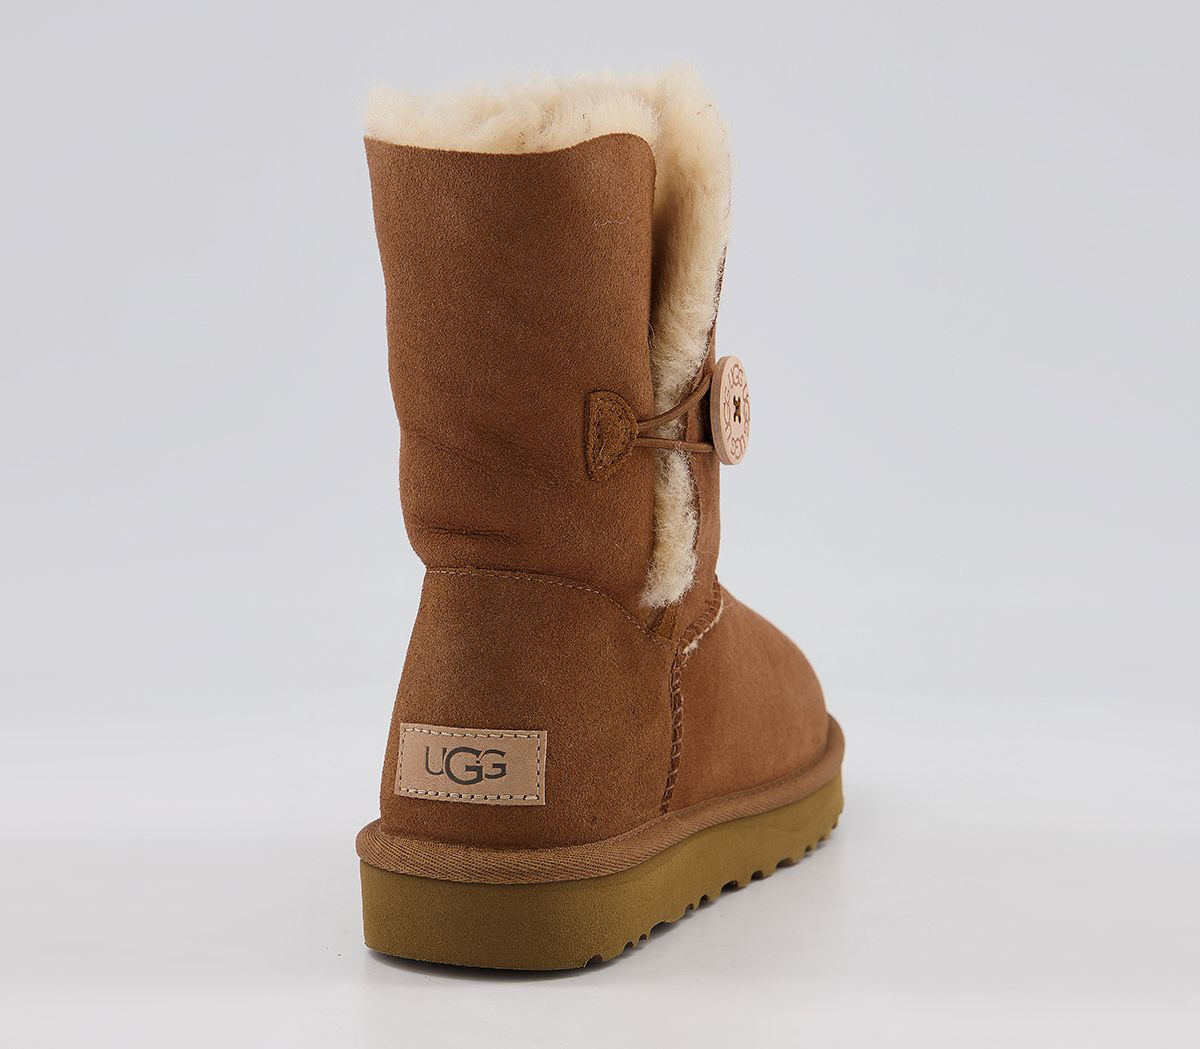 d84f4258026 Bailey Button II Boots